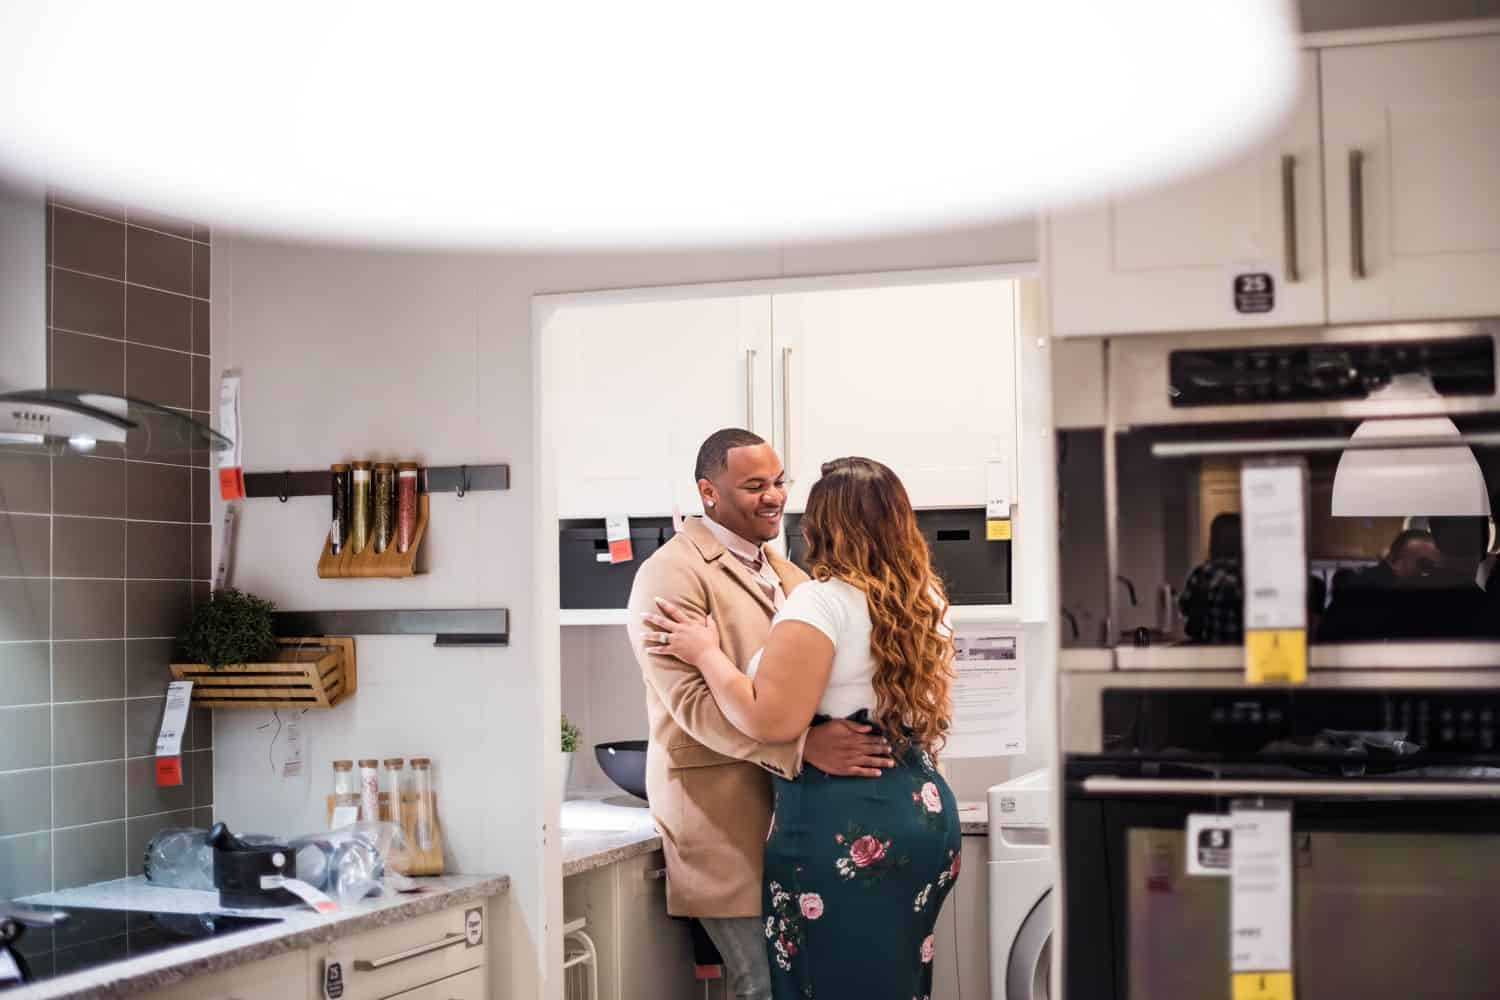 Great Engagement Sessions: Couple embraces in an IKEA kitchen.